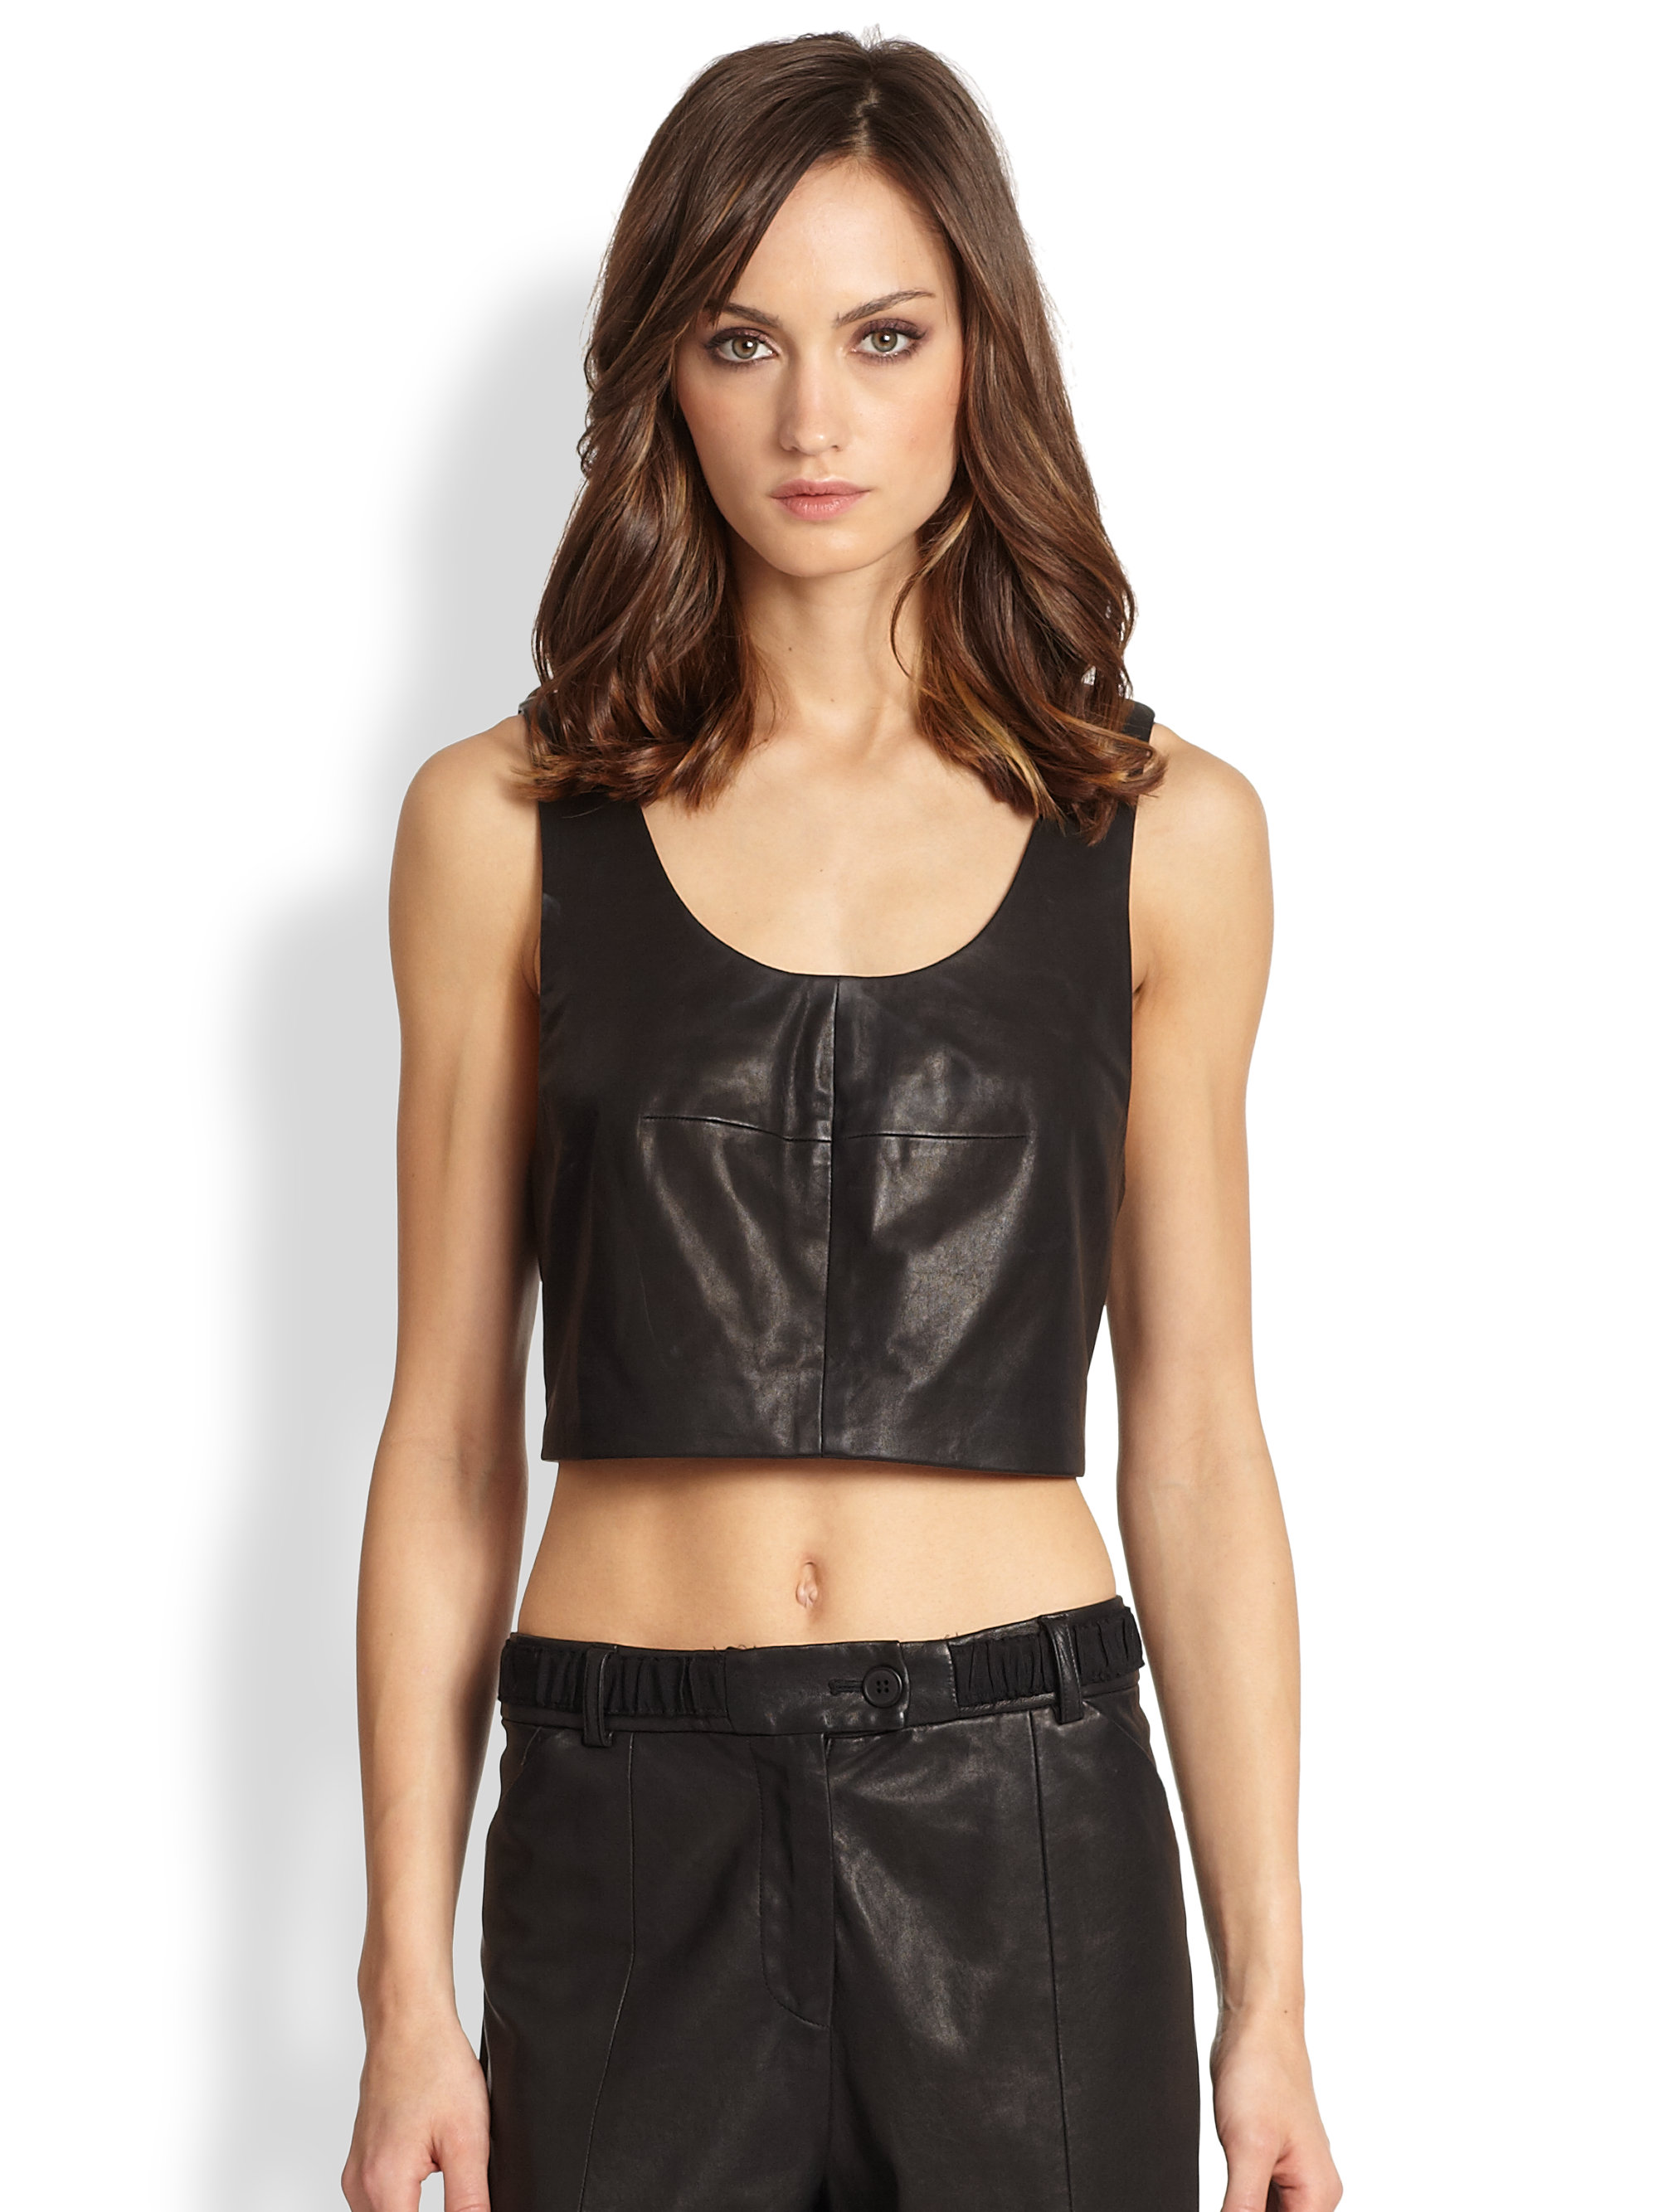 Tank Top Fashion Model New Tip Tumblr Girl Tumblr: Thakoon Addition Cropped Leather Tank Top In Black